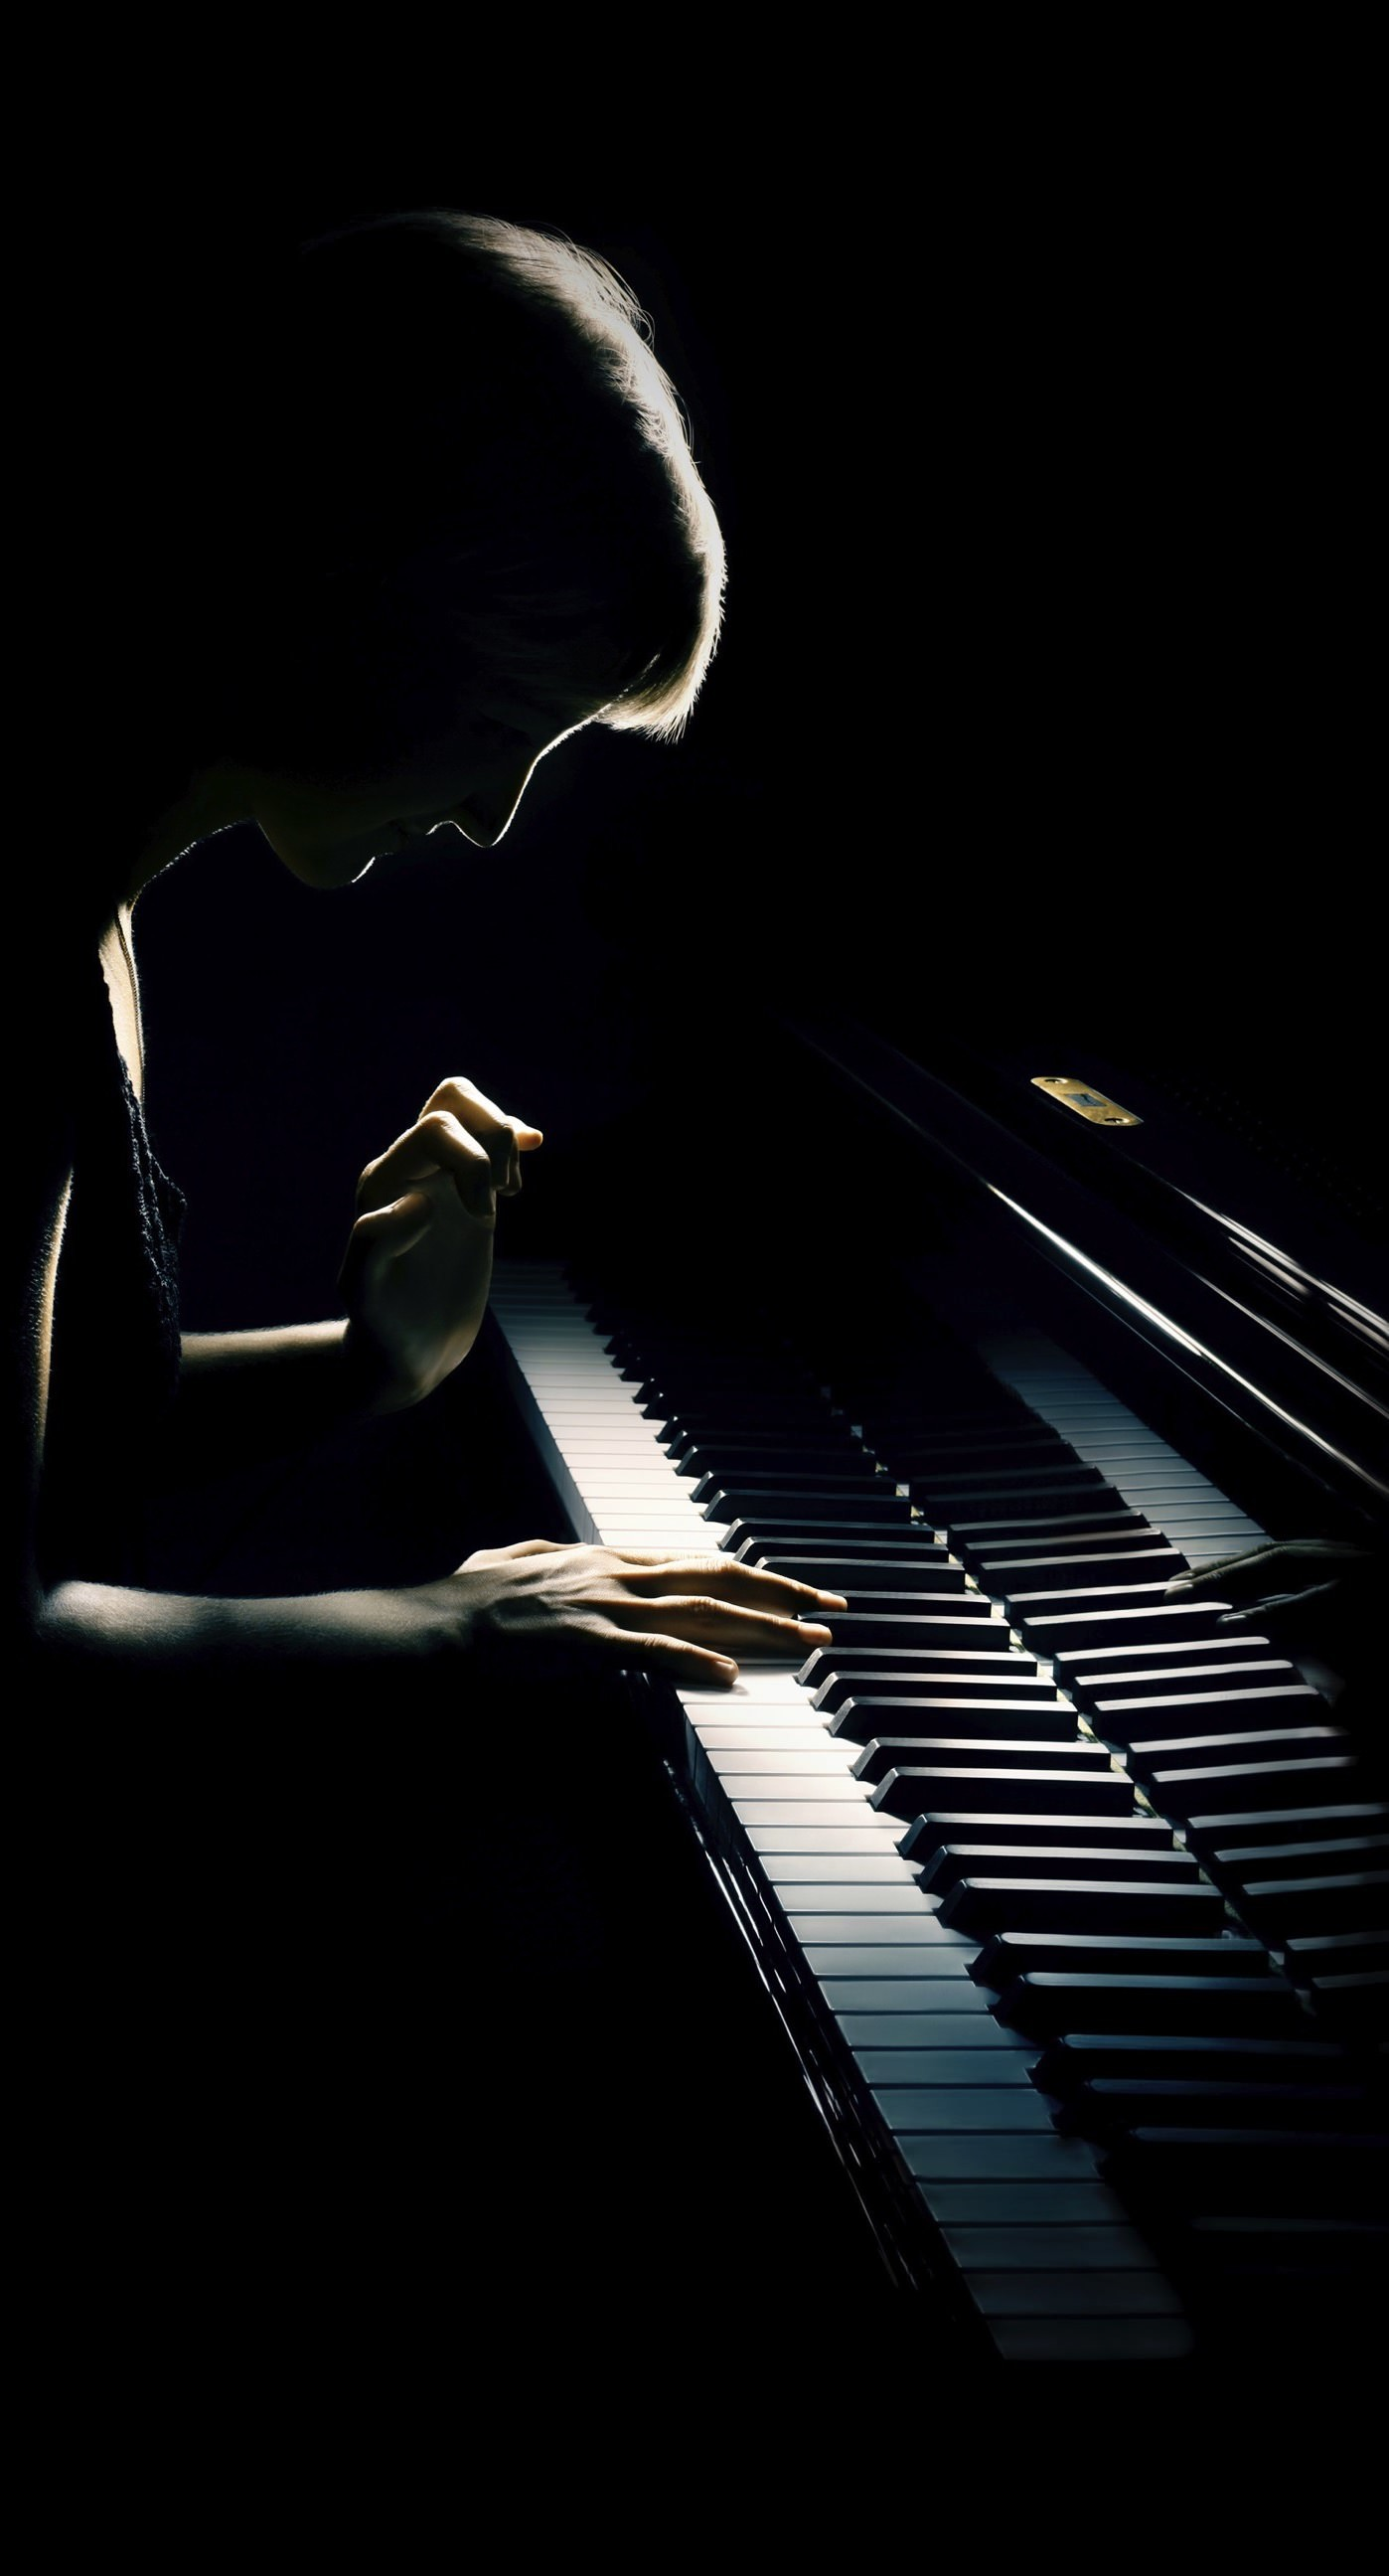 Piano Keys Wallpaper 74 Pictures